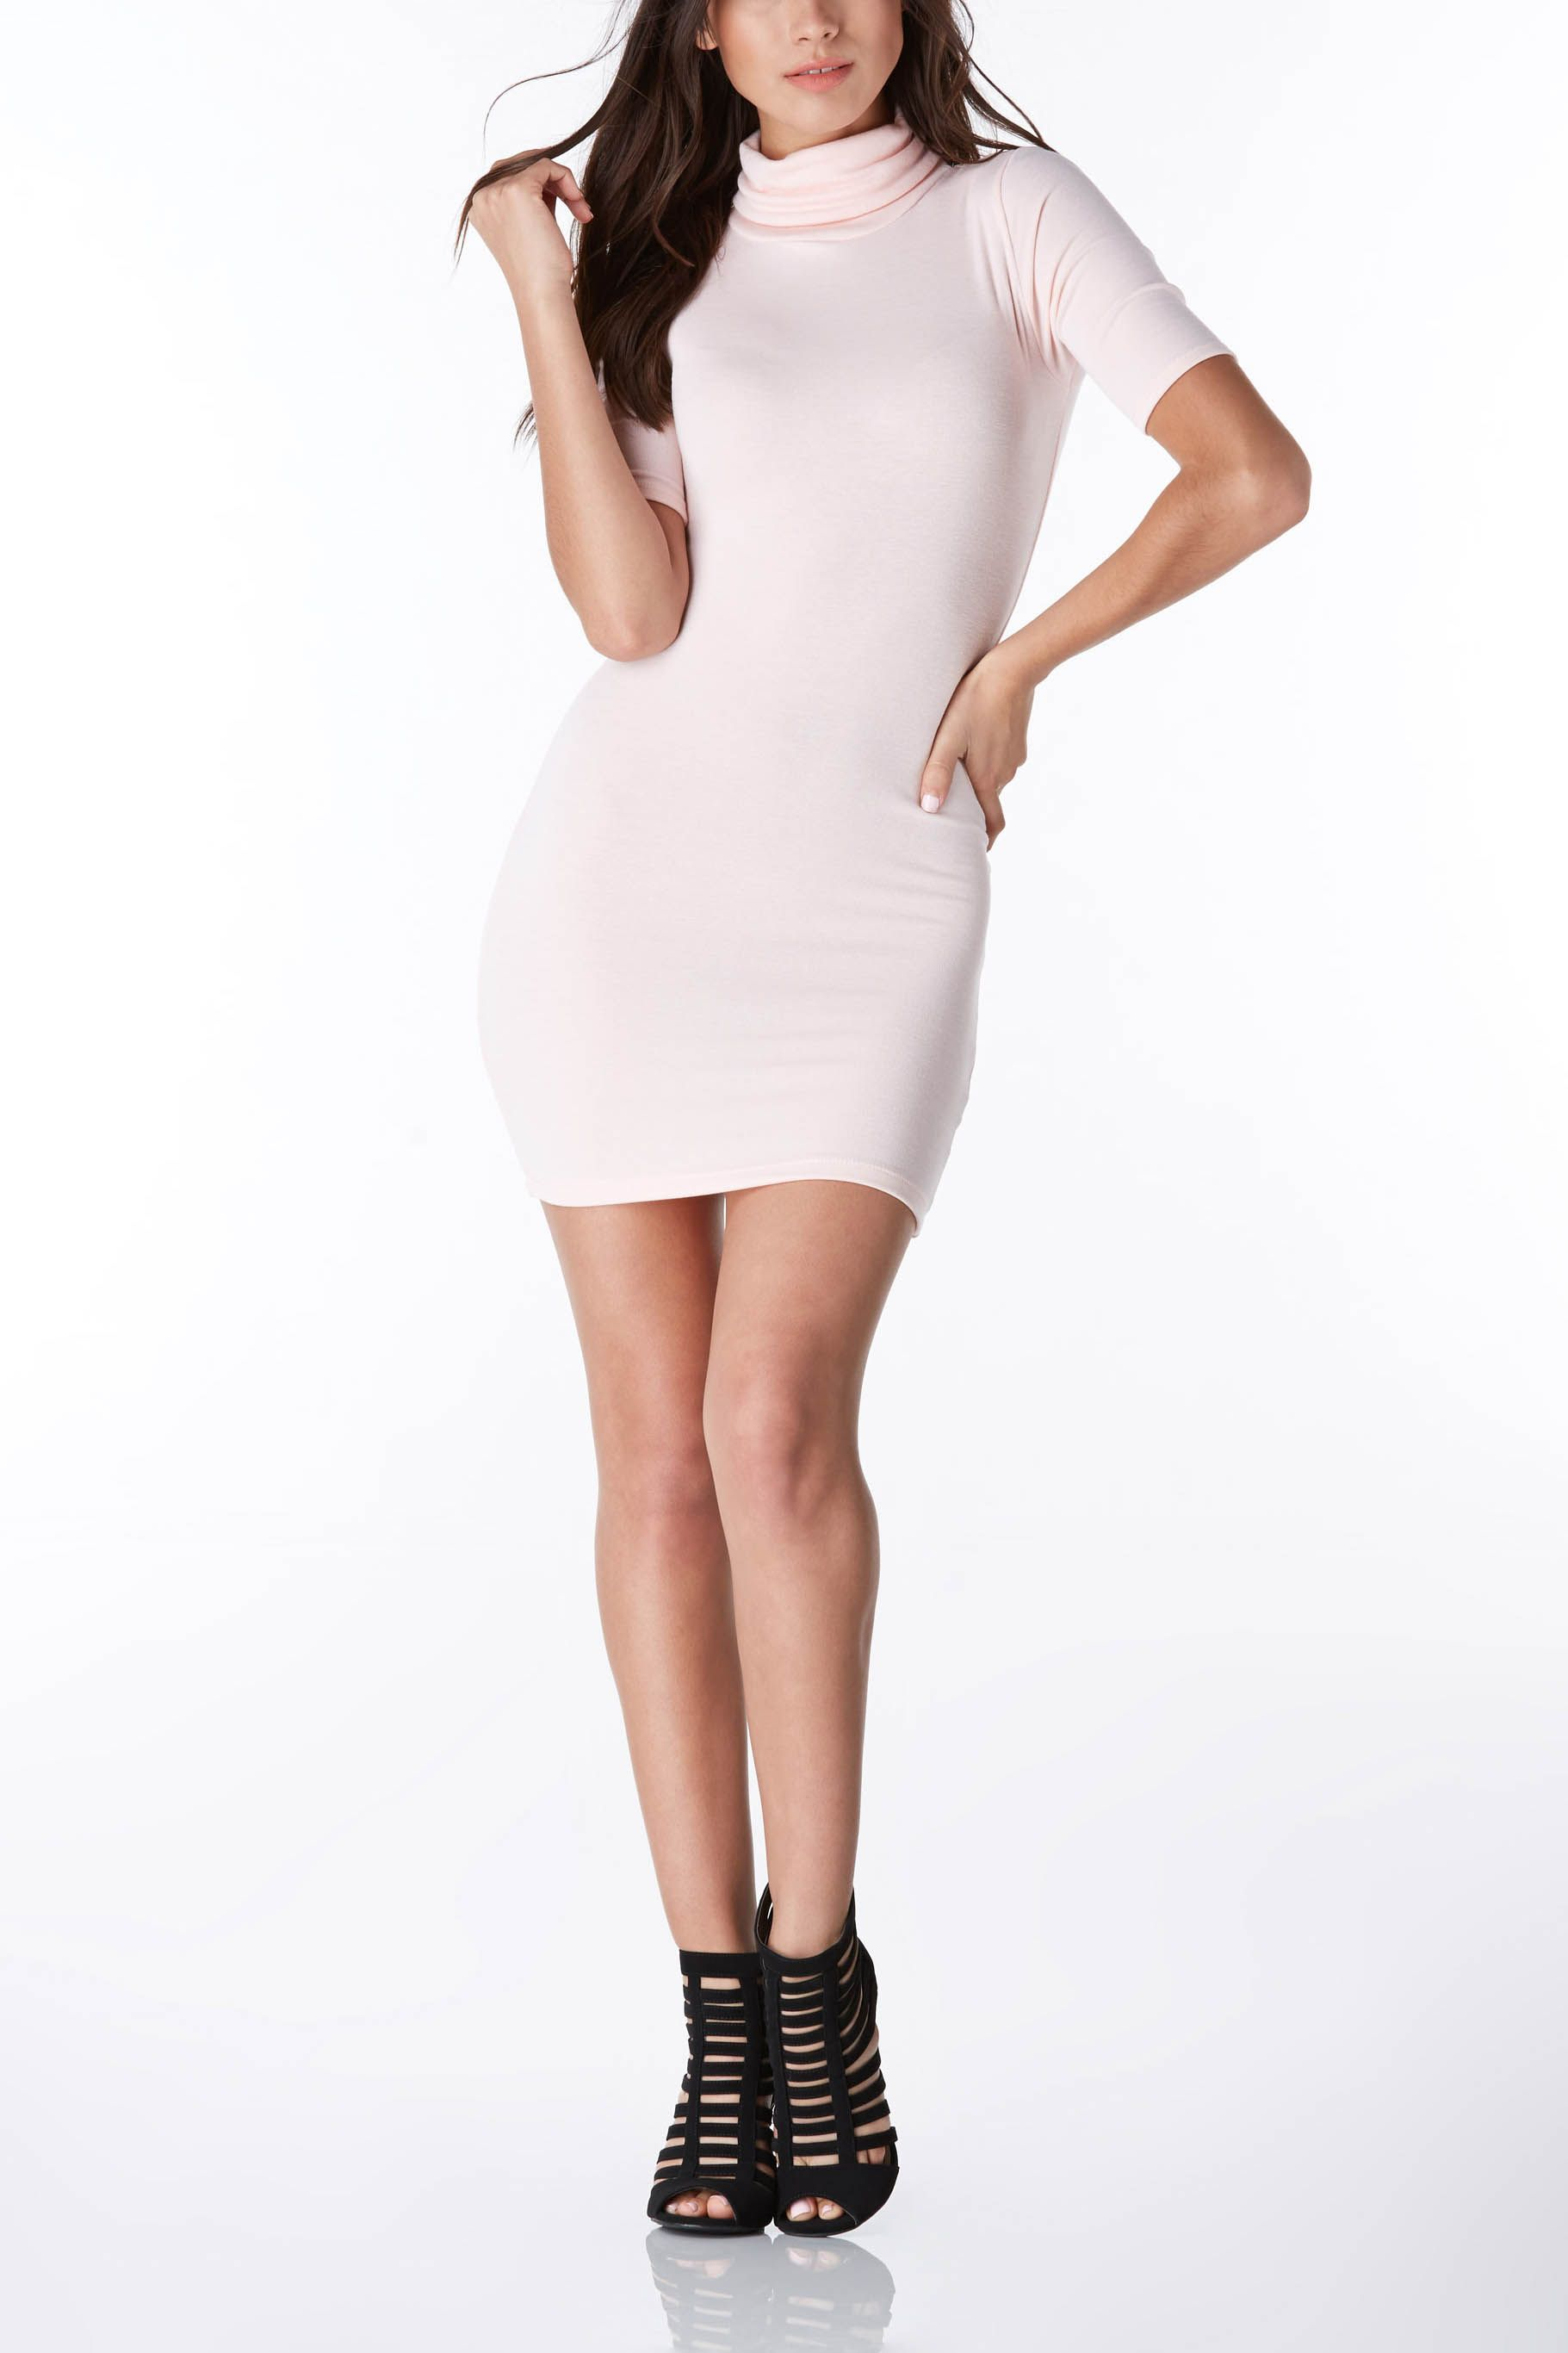 Perfectly fitted mini dress in the softest fabric! #trendy